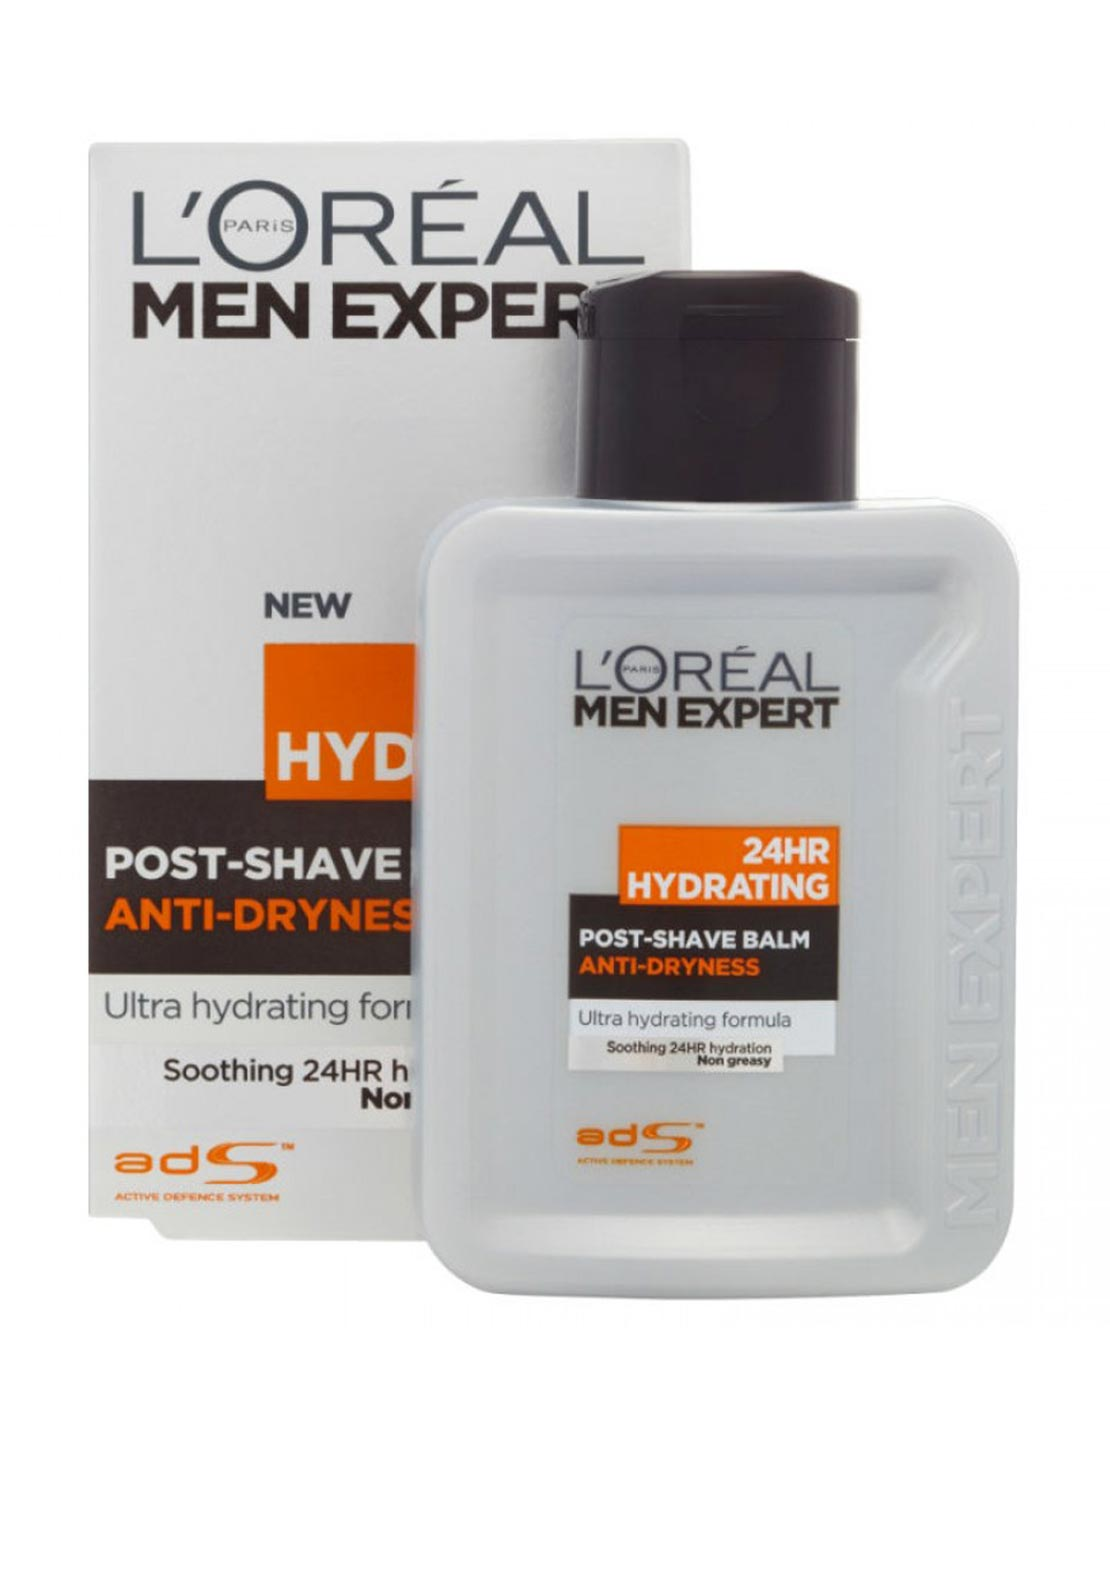 L'Oreal Men 24hr Hydrating Post-Shave Balm Anti-Dryness, 100ml